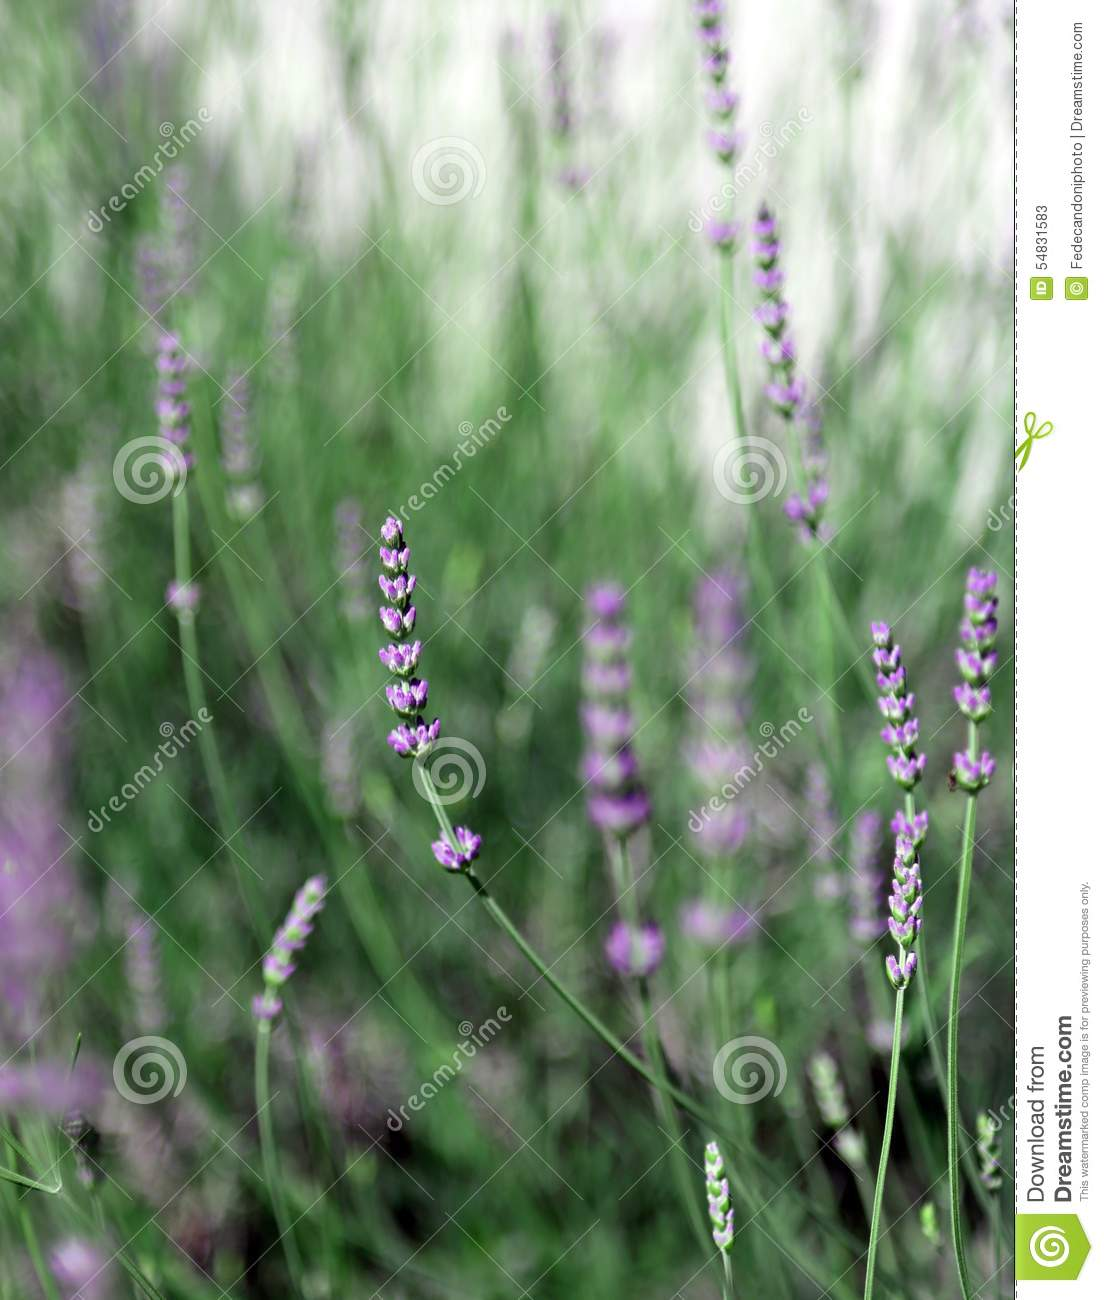 Flowers and plant of lavender in spring